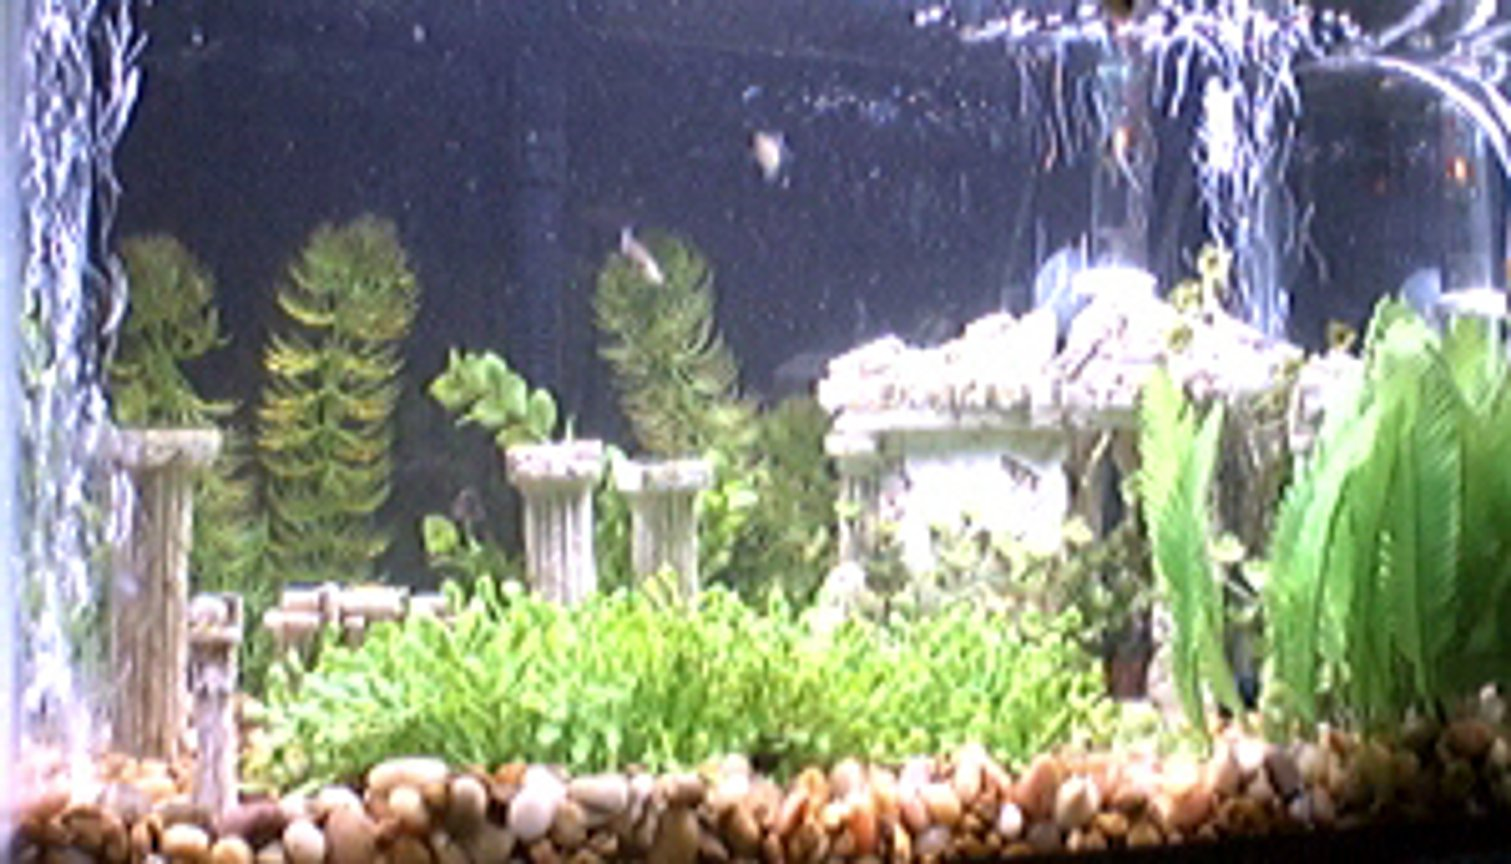 10 gallons freshwater fish tank (mostly fish and non-living decorations) - The Parthenon